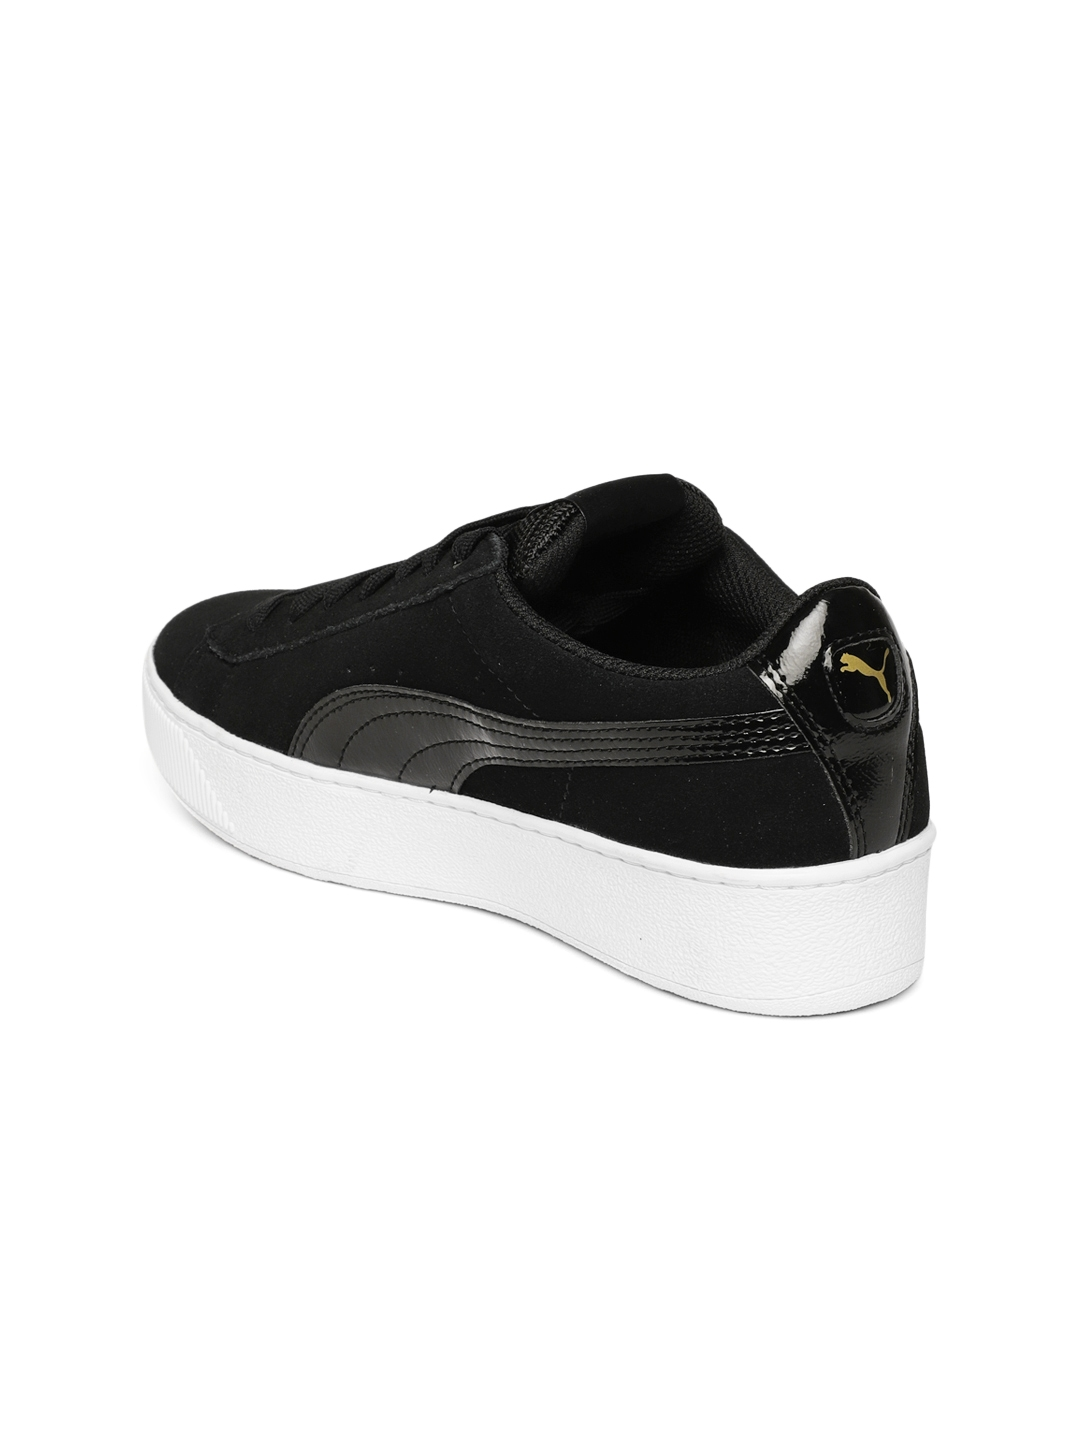 c58fee8386 Buy Puma Women Black Vikky Platform Suede Sneakers - Casual Shoes ...